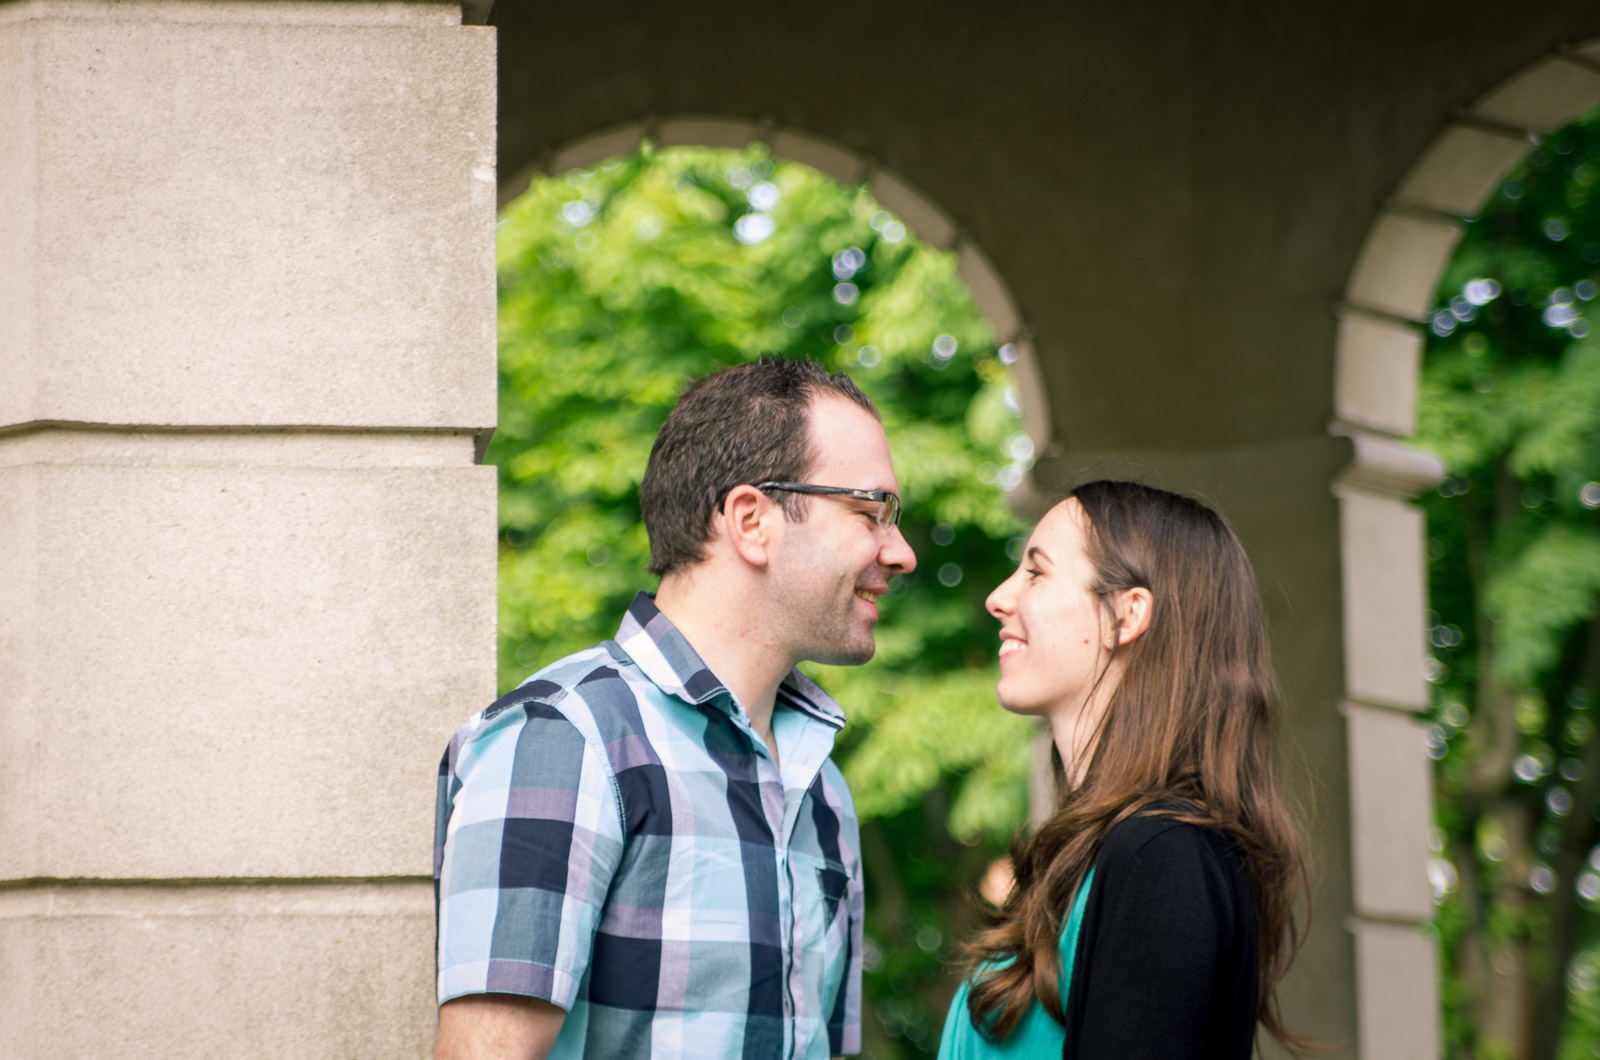 Engagement session: chemistry is in the air